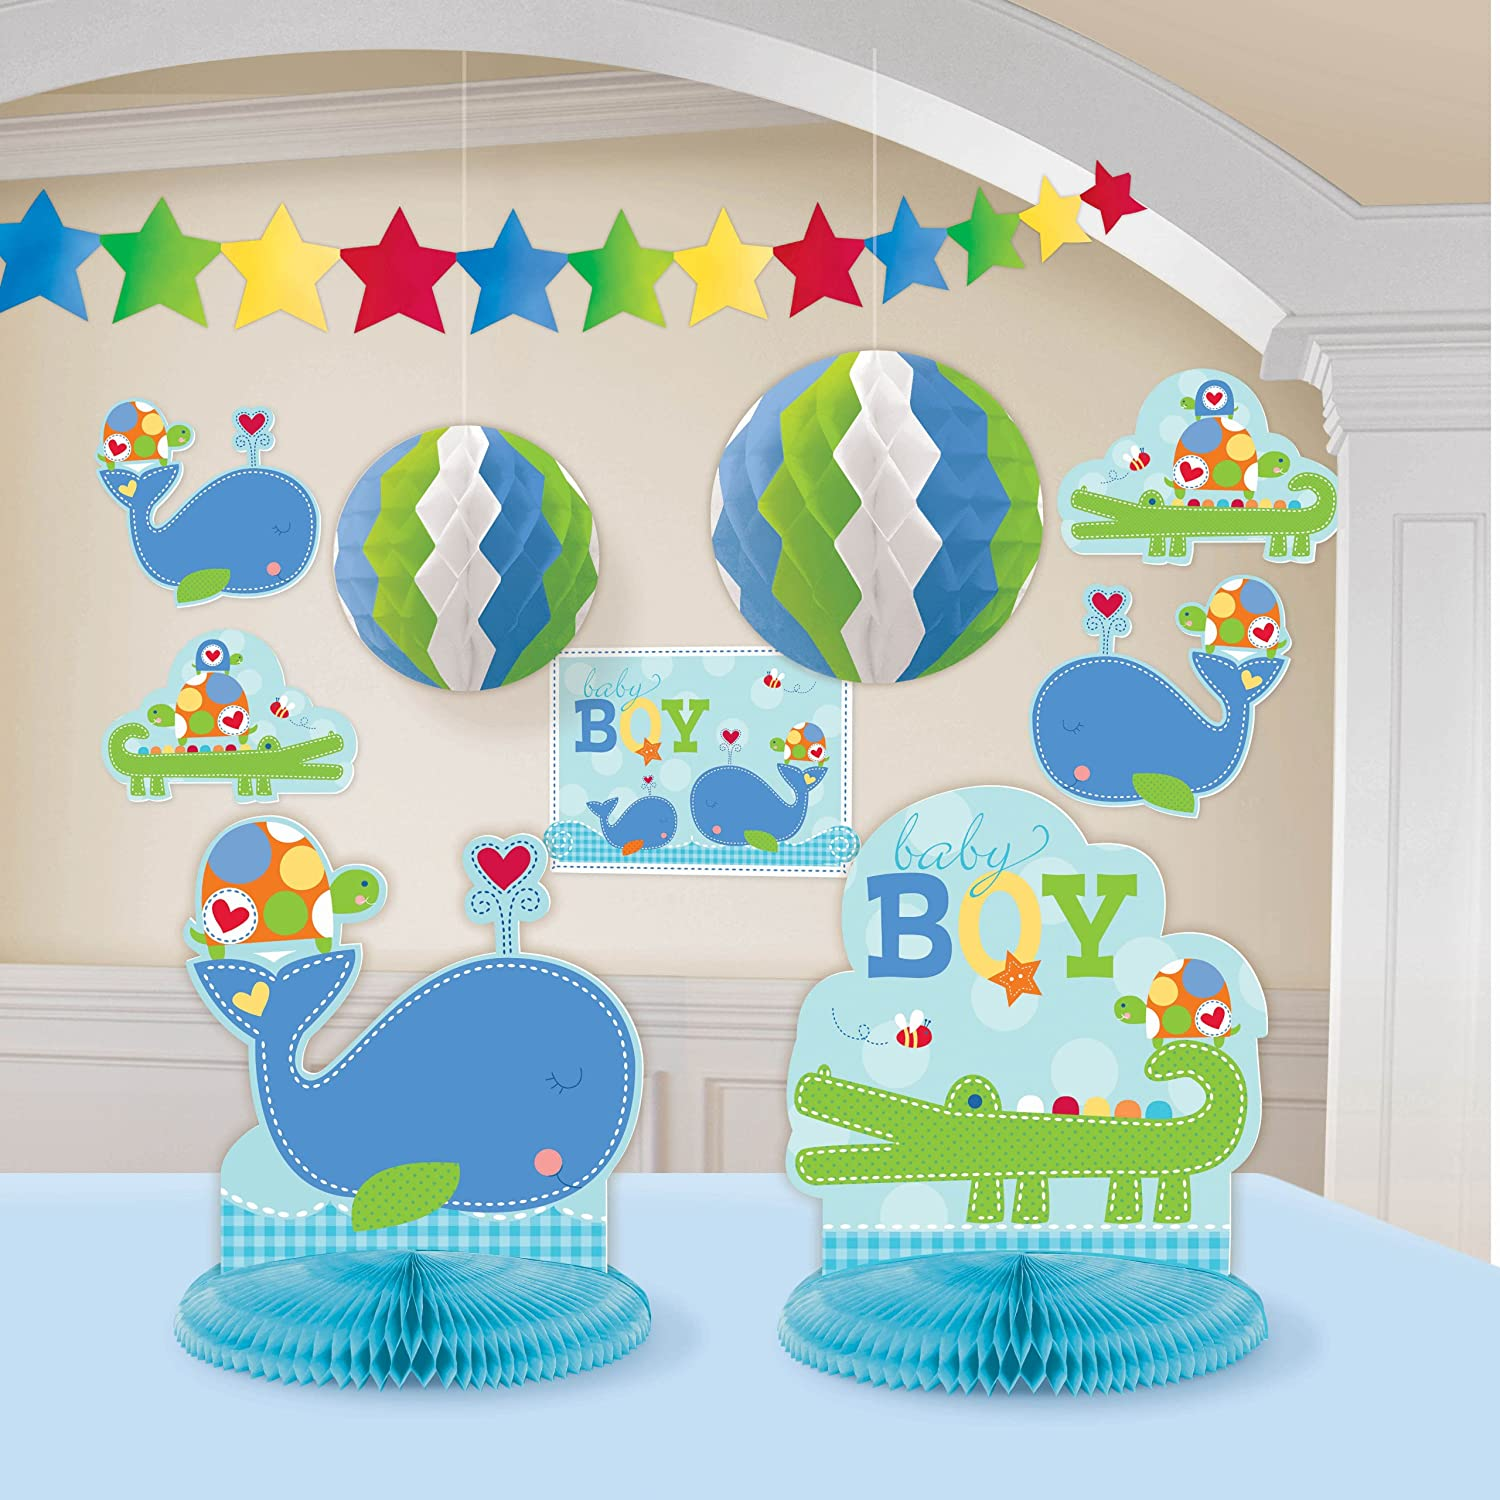 ahoy baby boy baby shower party decorations baby shower mania